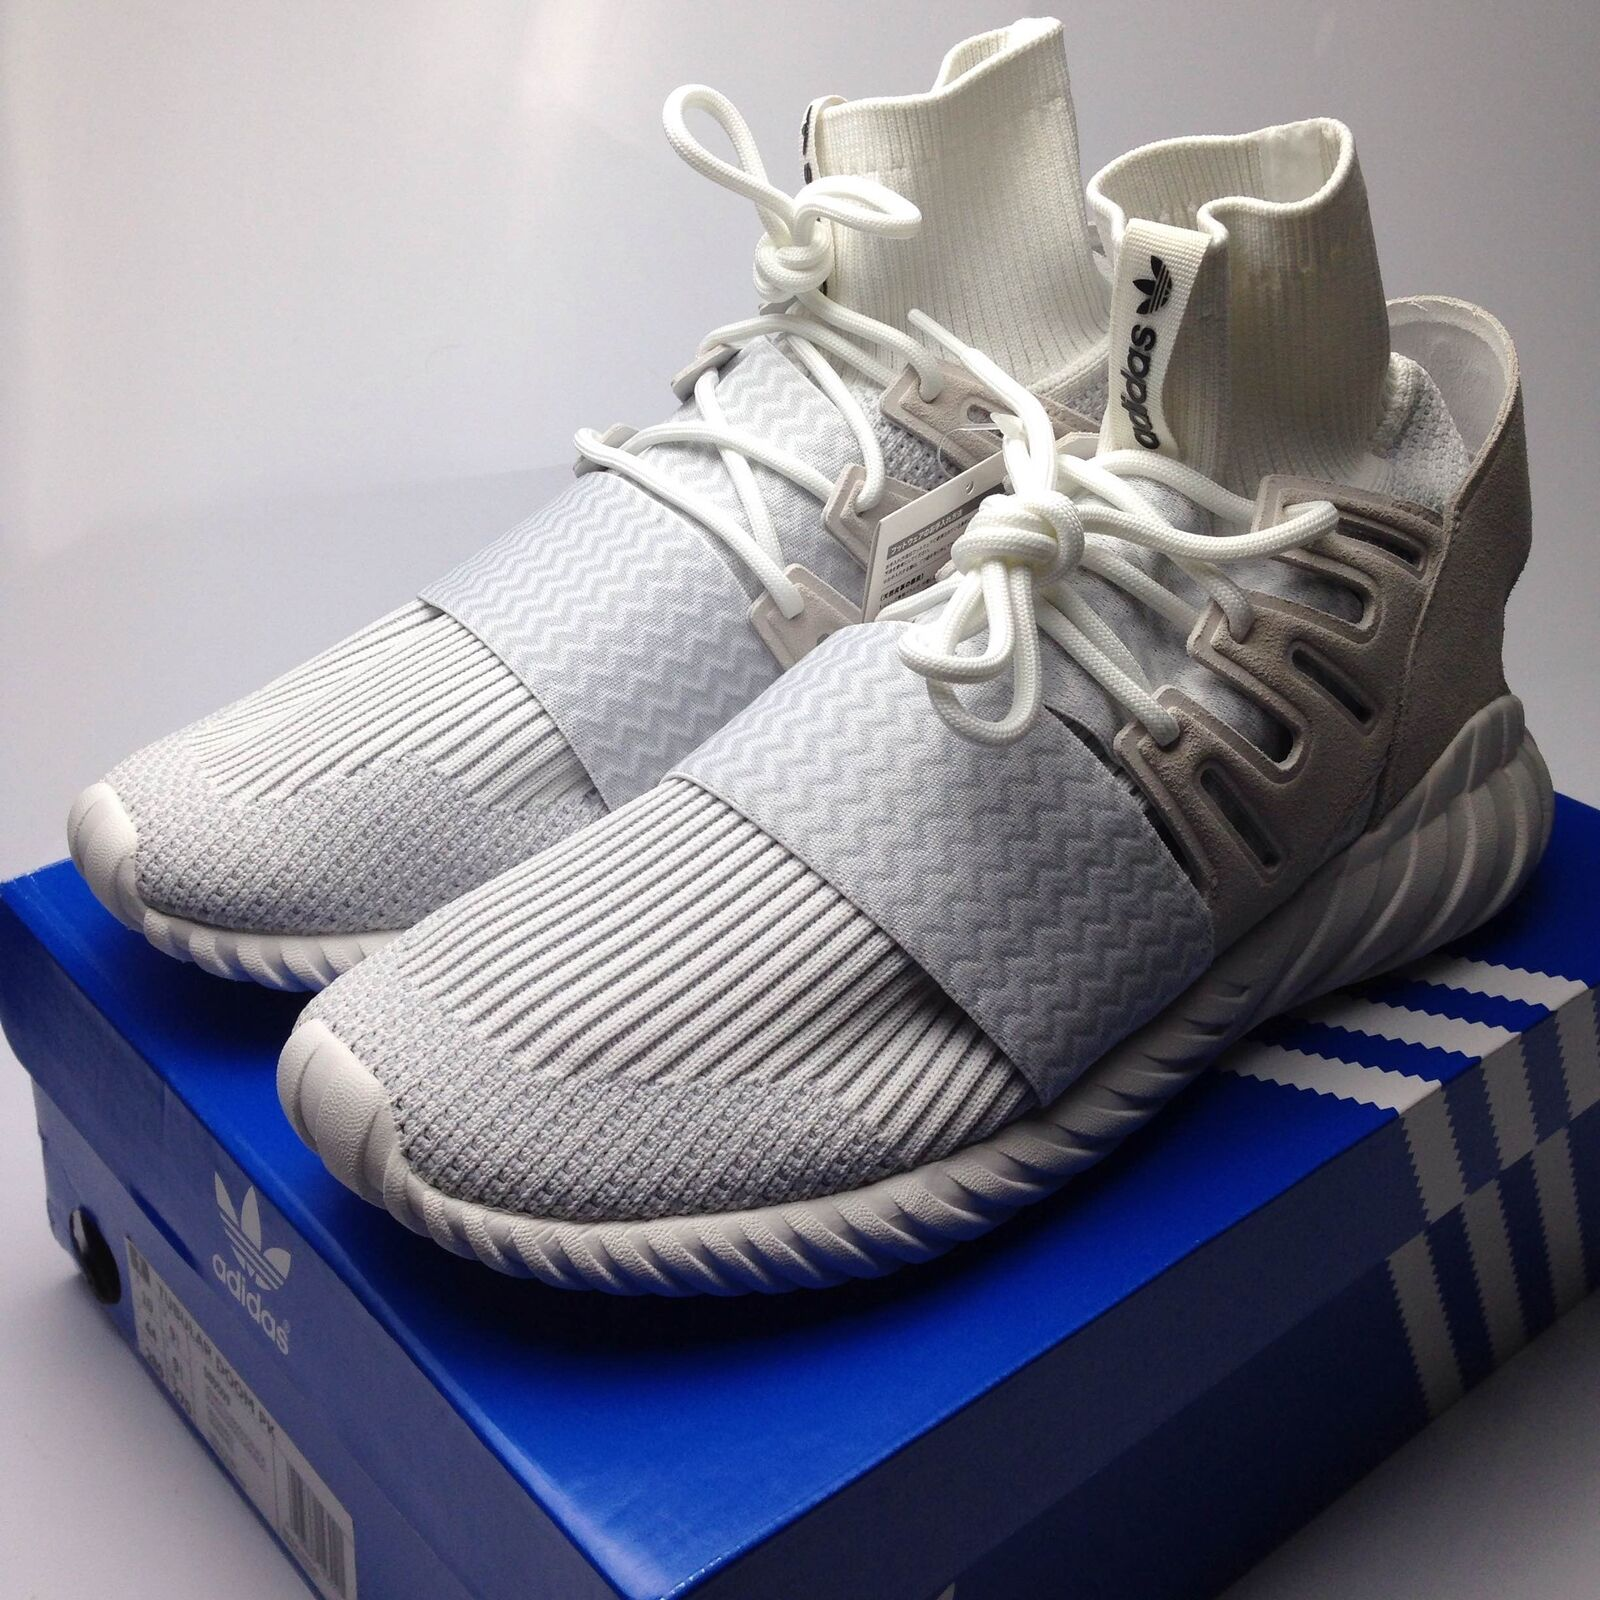 Adidas Tubular Doom PK from japan (5111